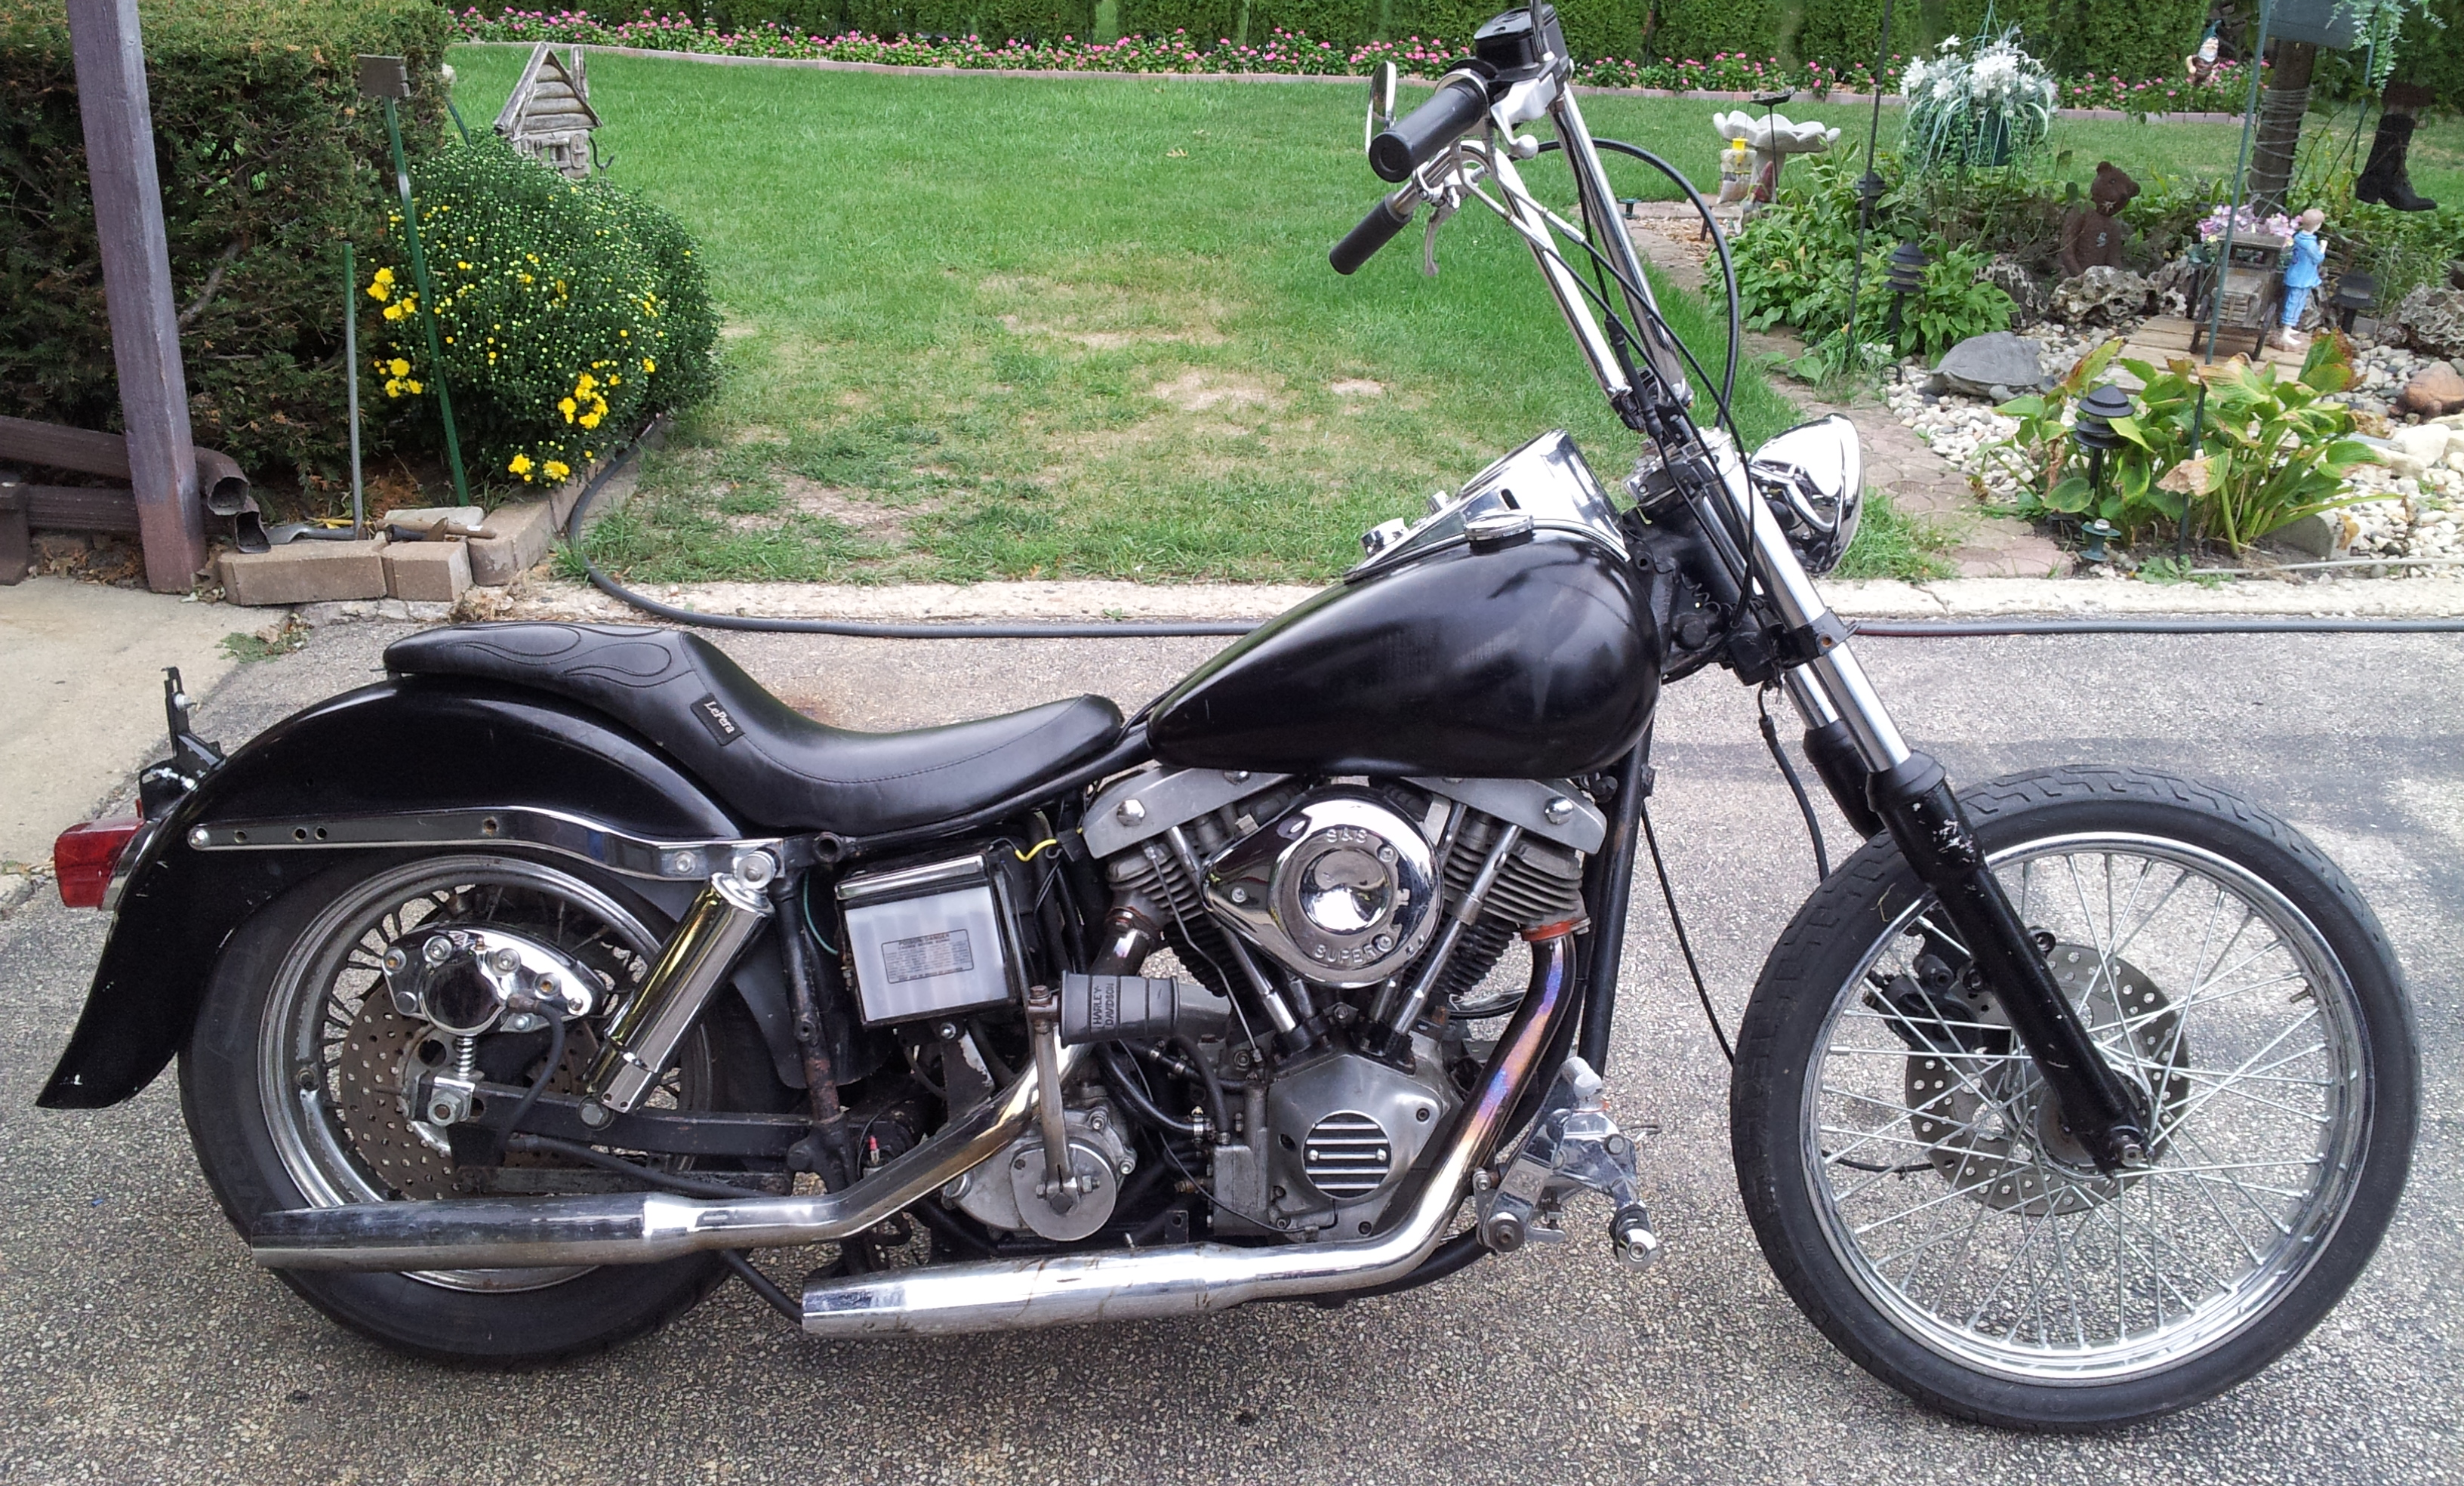 1973 Harley Davidson Shovelhead Wiring All Kind Of Diagrams Diagram 1999 Fxr Dimensions Elsalvadorla Flh